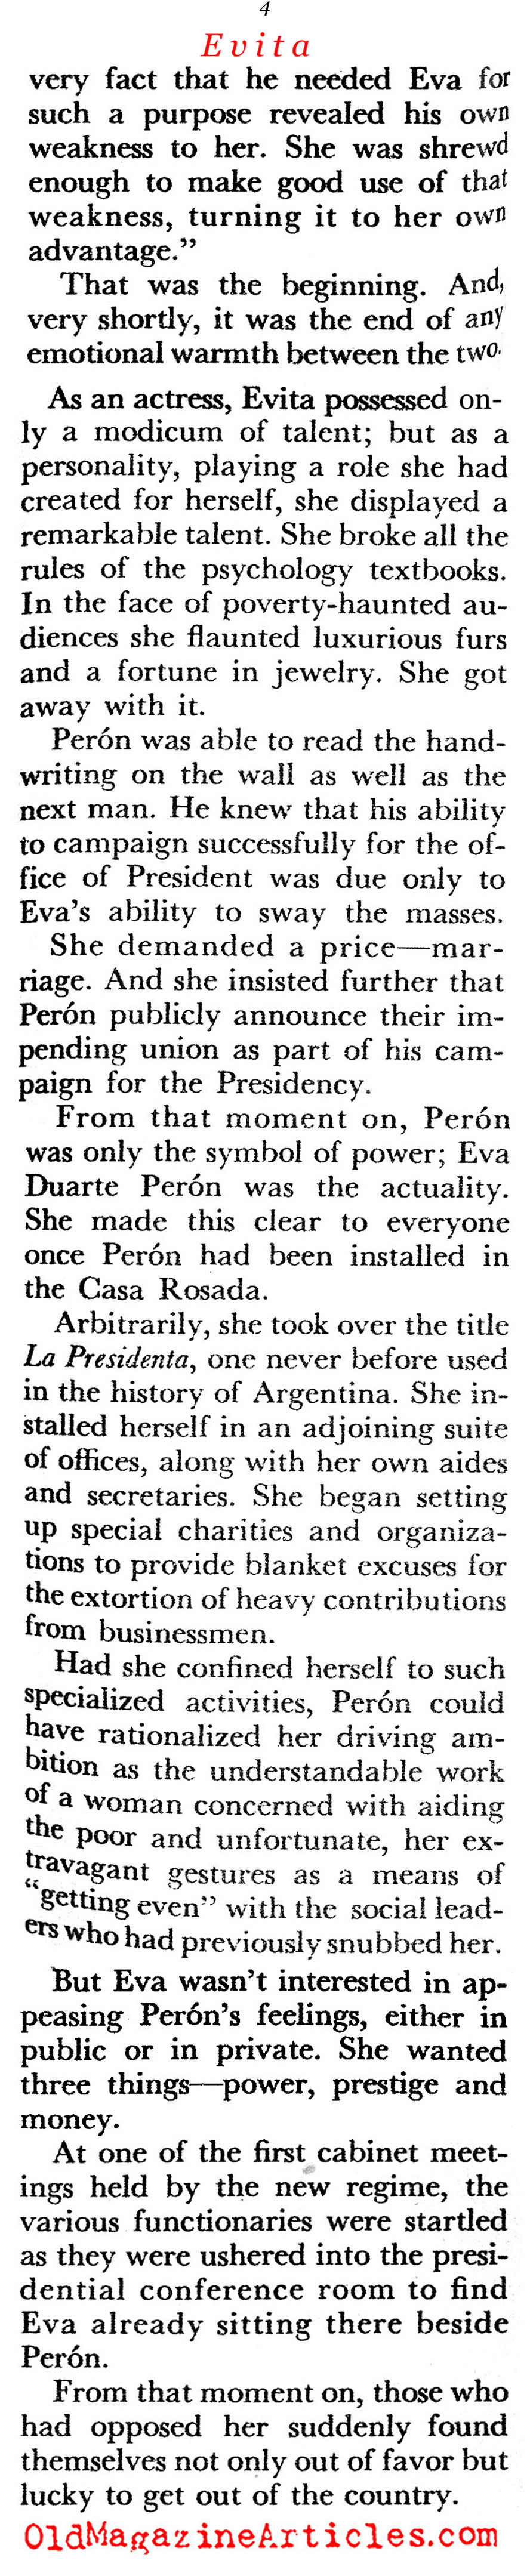 Meet the Perons (Coronet Magazine, 1956)